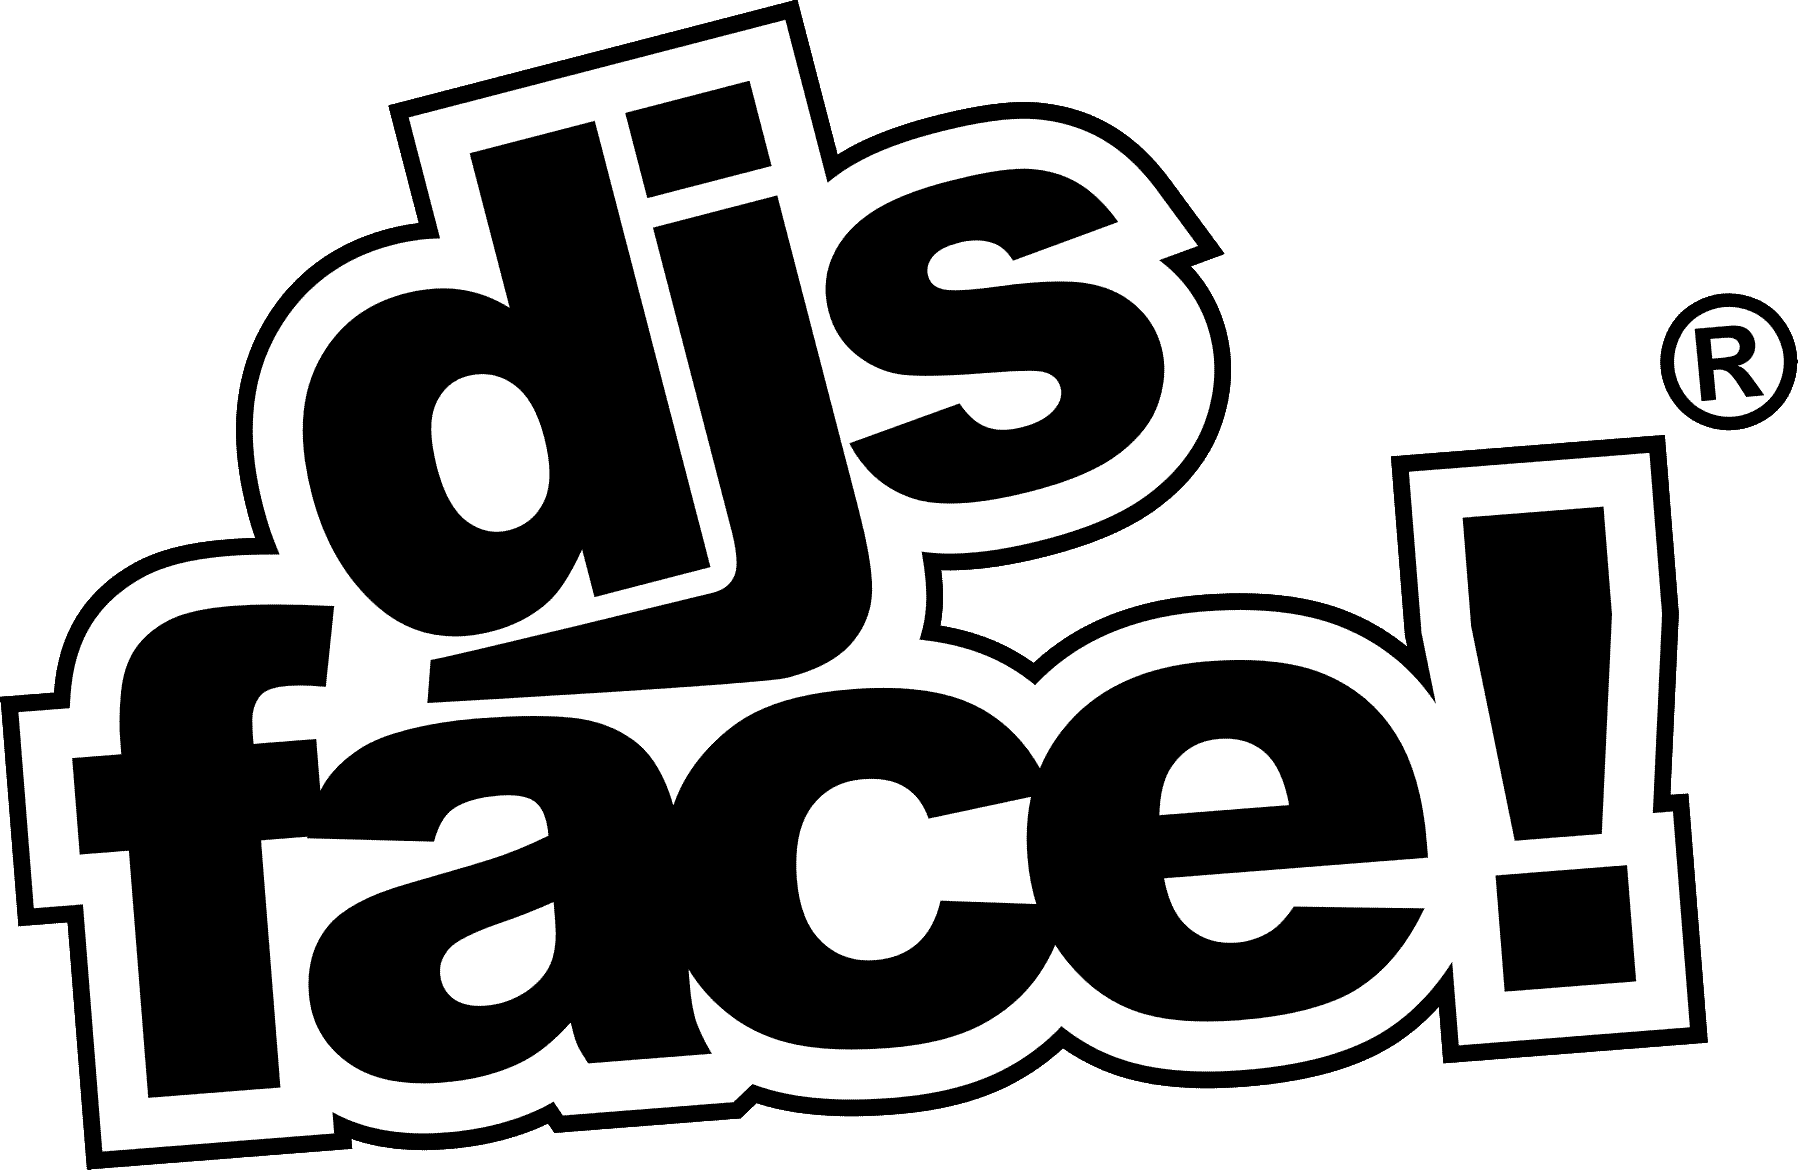 Welcome to the world of custom DJ gear - djs-face!®